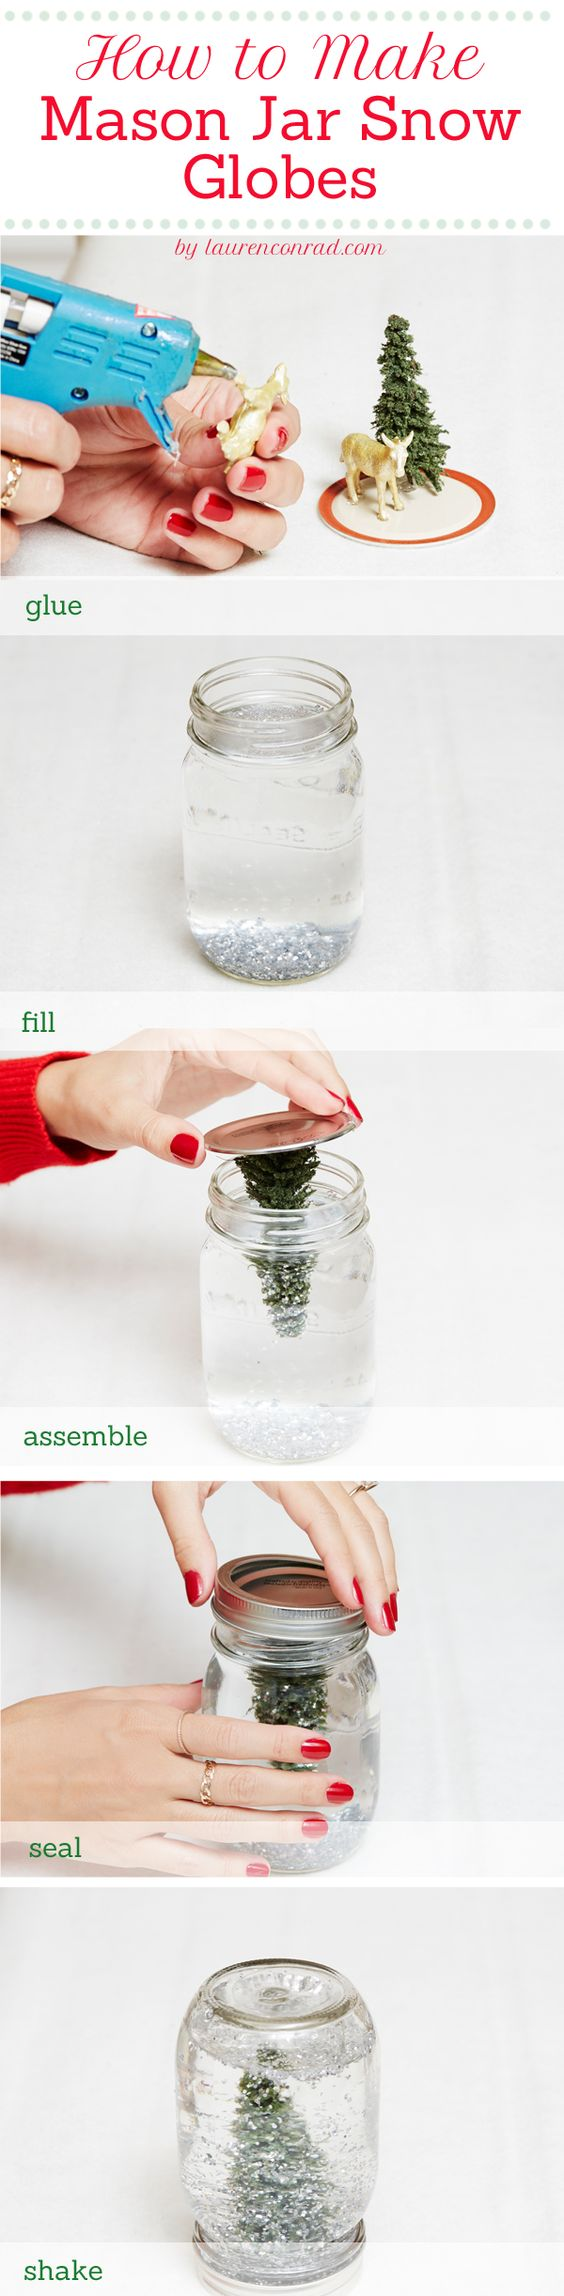 Why not make a Christmas snowglobe this year? Just take a mason jar, add a tree, a reindeer, glitter and some water!